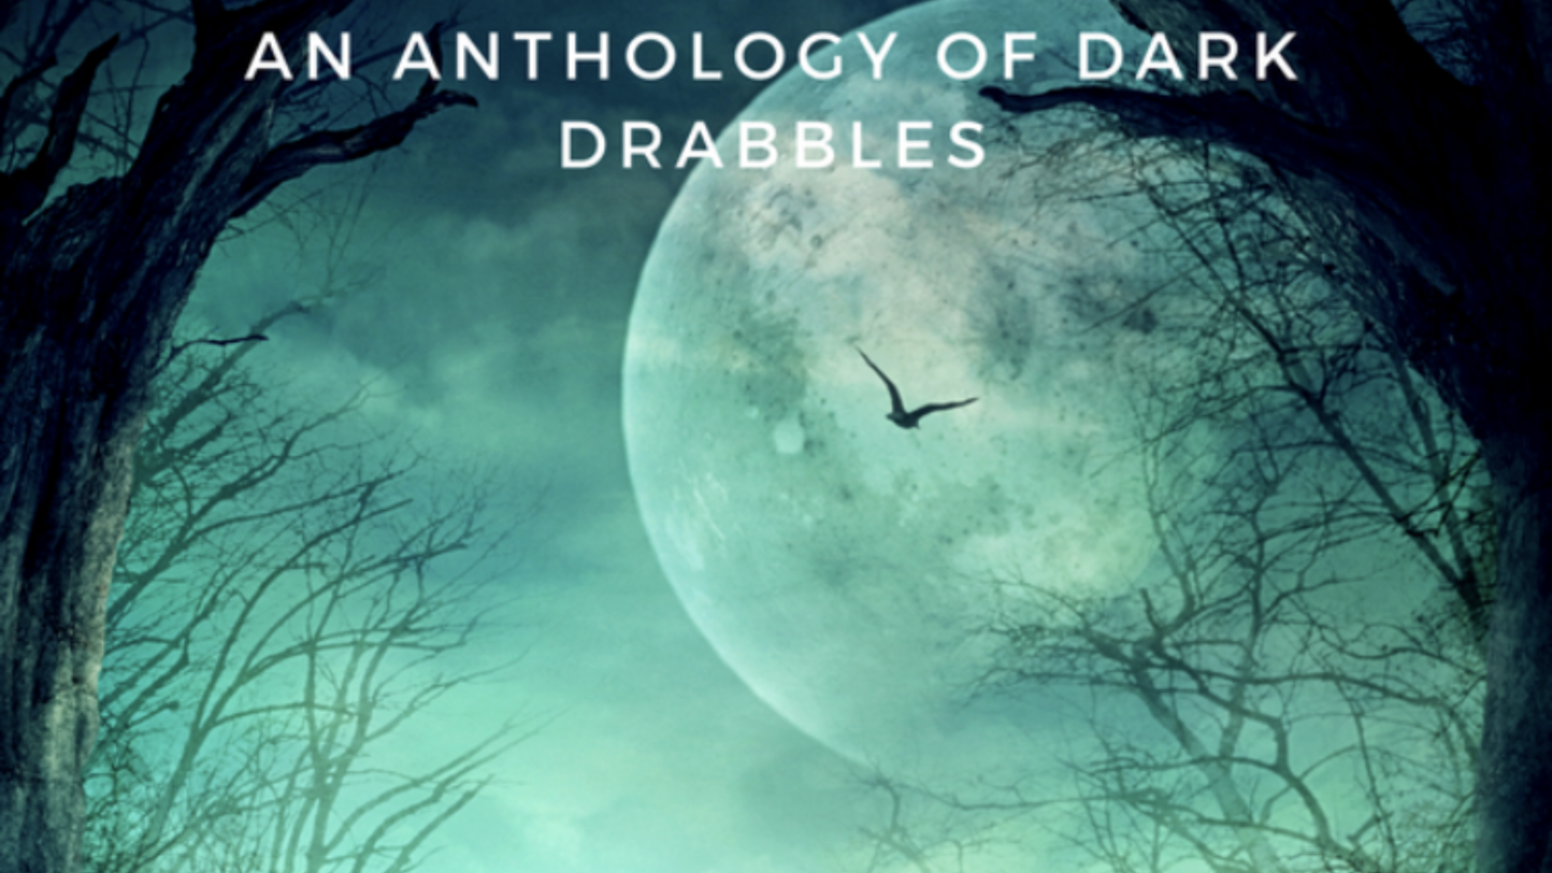 An anthology of 100-word stories by more than 85 authors. Science Fiction, Fantasy, and Horror within.